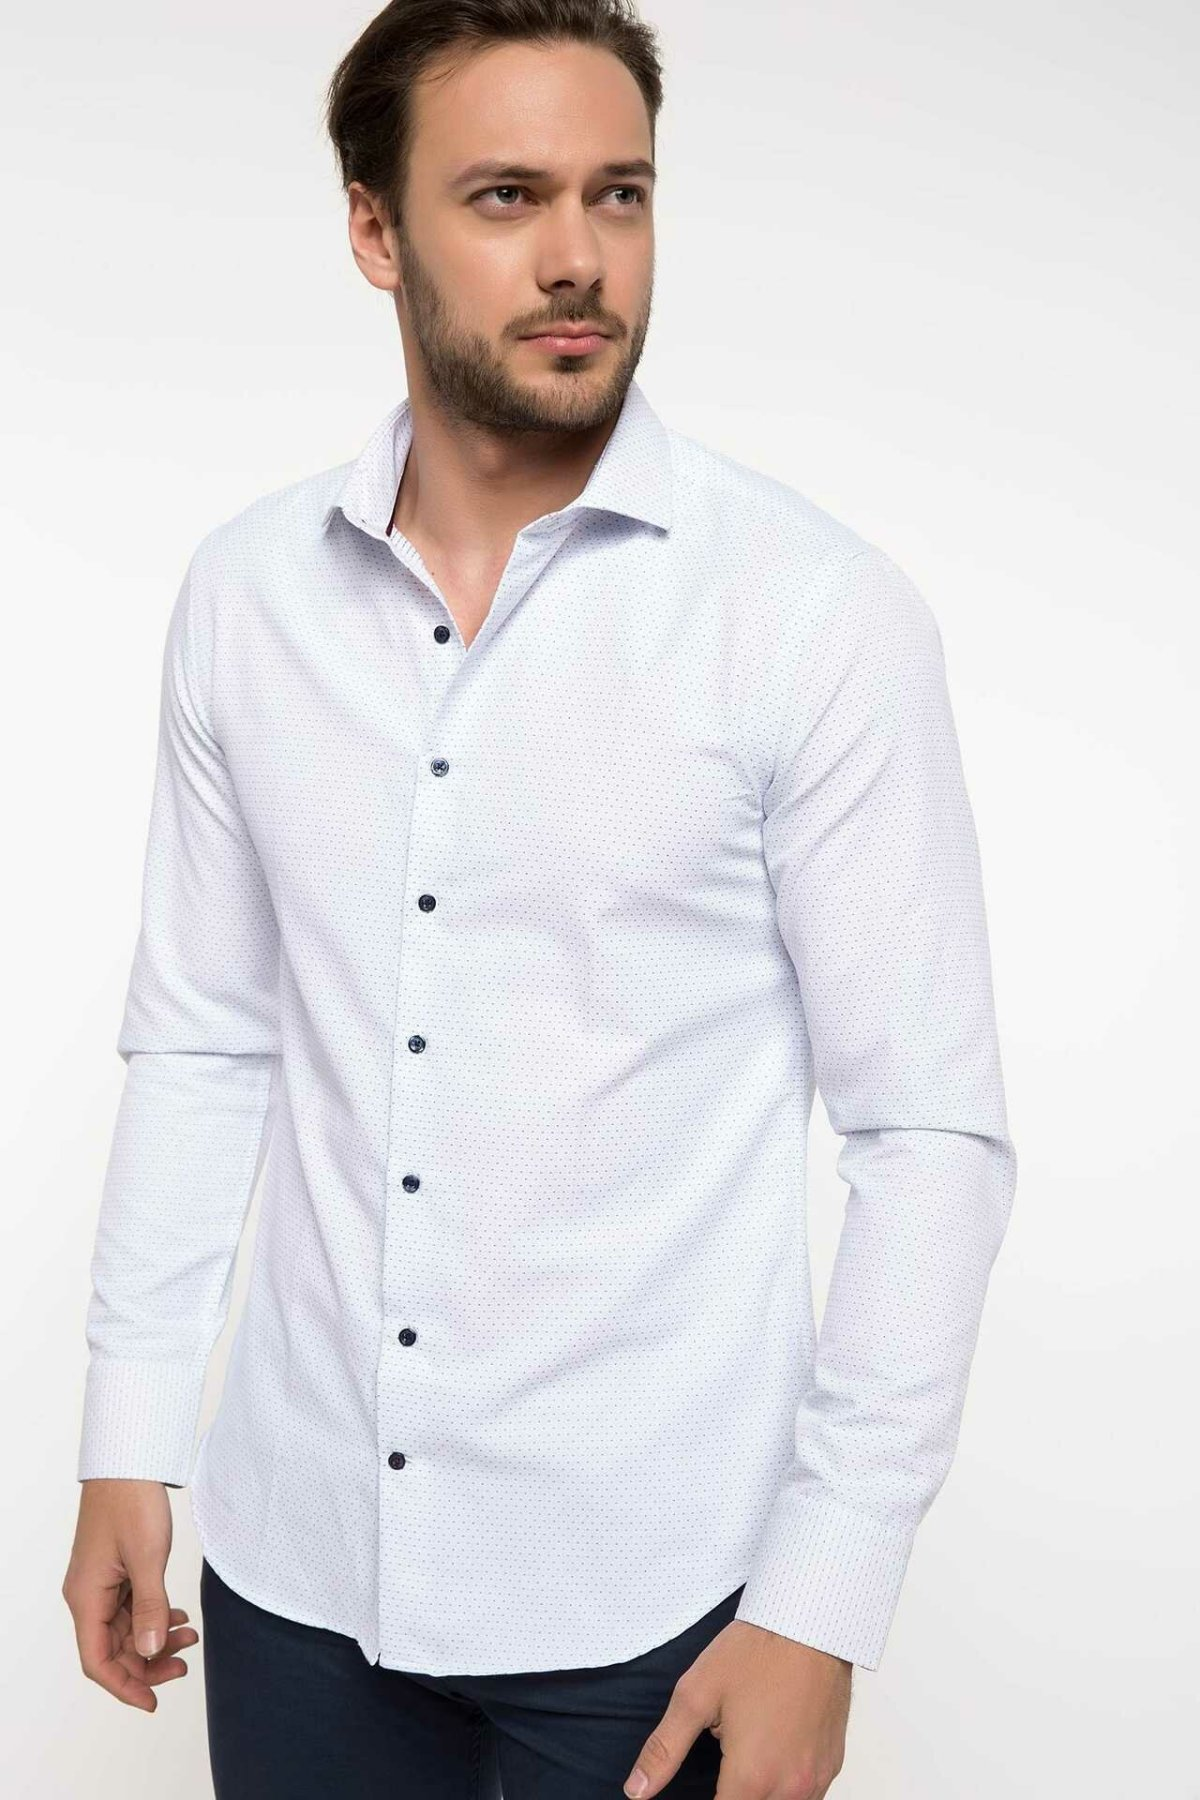 DeFacto Men Formal White Shirt Casual Woven Top Long Sleeve Shirt Office Business Wear Top Shirt New - I1148AZ18SP